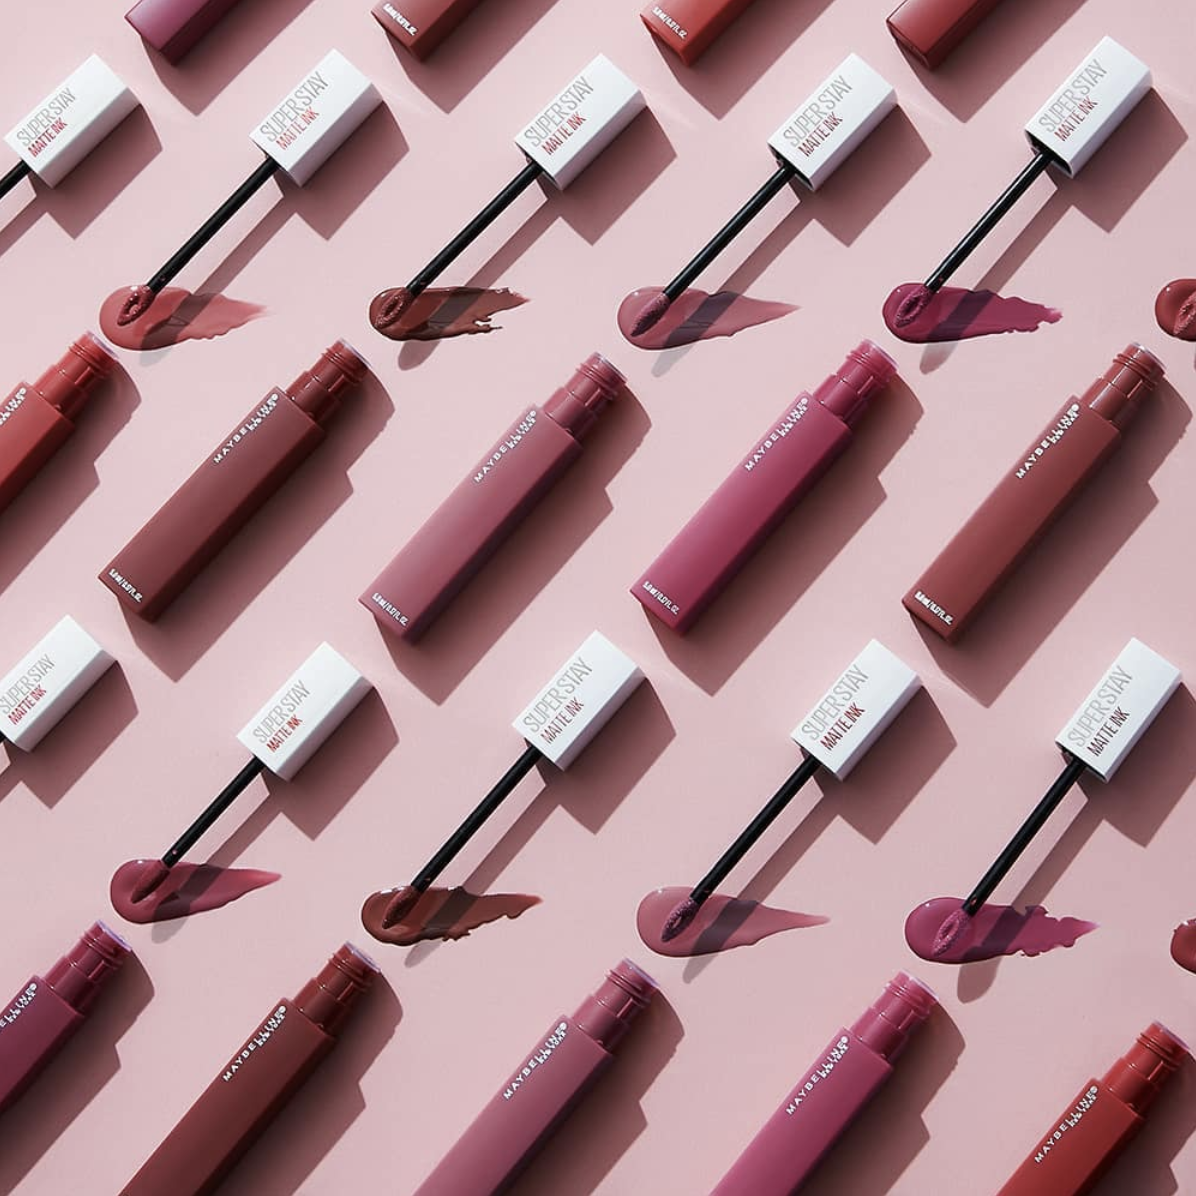 A geometric flat-lay featuring several shades of Maybelline's SuperStay Matte Ink Liquid Lipstick.